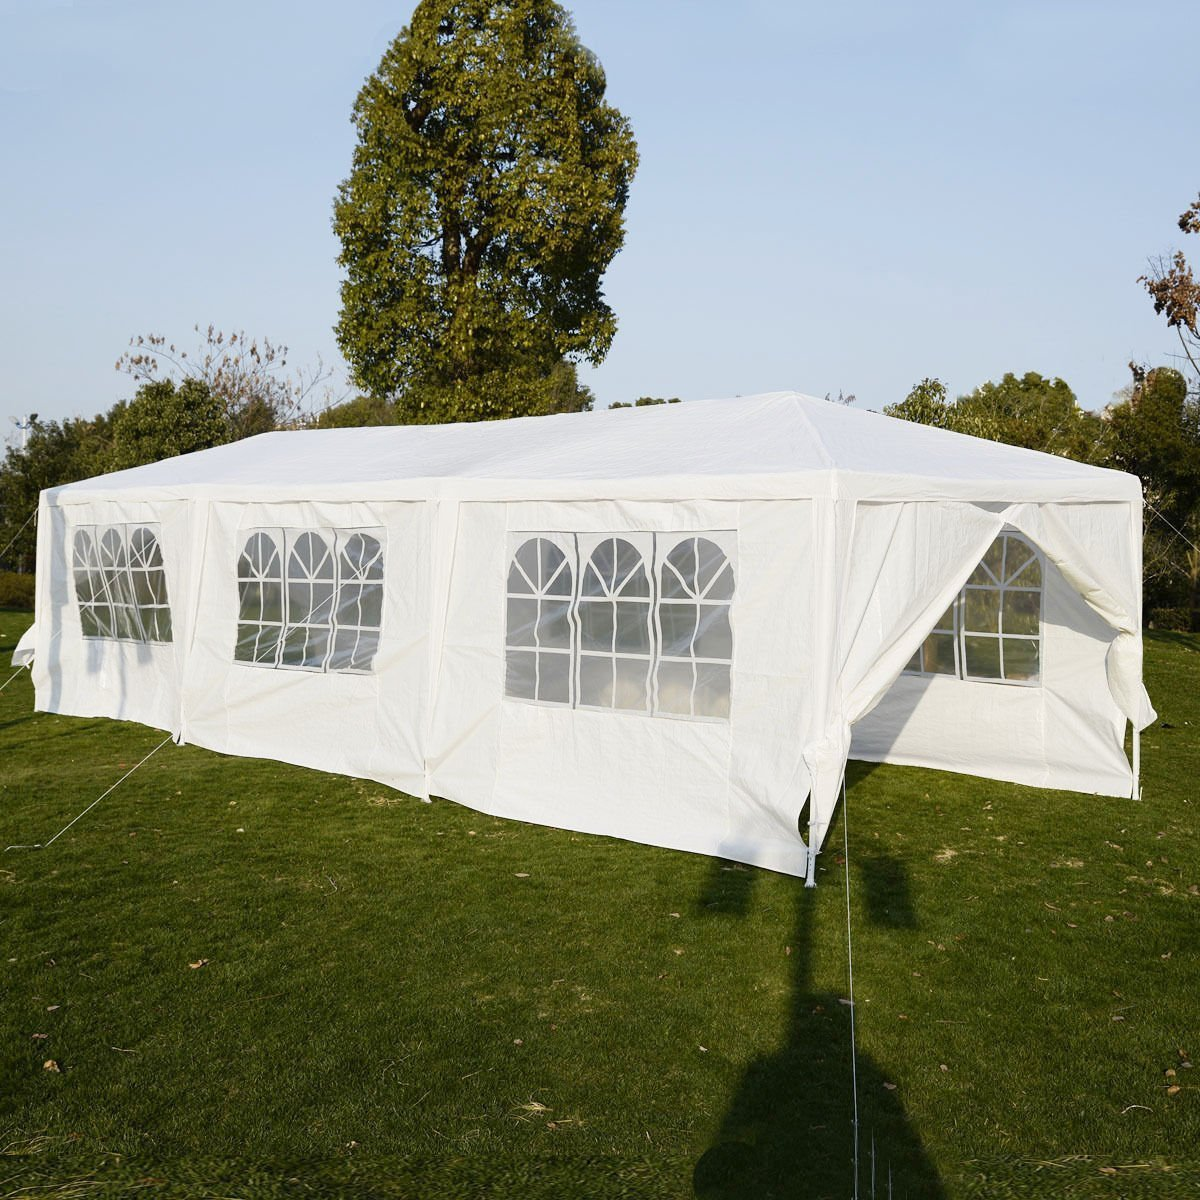 Amazon.com  BenefitUSA Wedding Party Tent Outdoor C&ing 10u0027x30u0027 Easy Set Gazebo BBQ Pavilion Canopy Cater Events  Garden u0026 Outdoor : tents for outdoor events - memphite.com